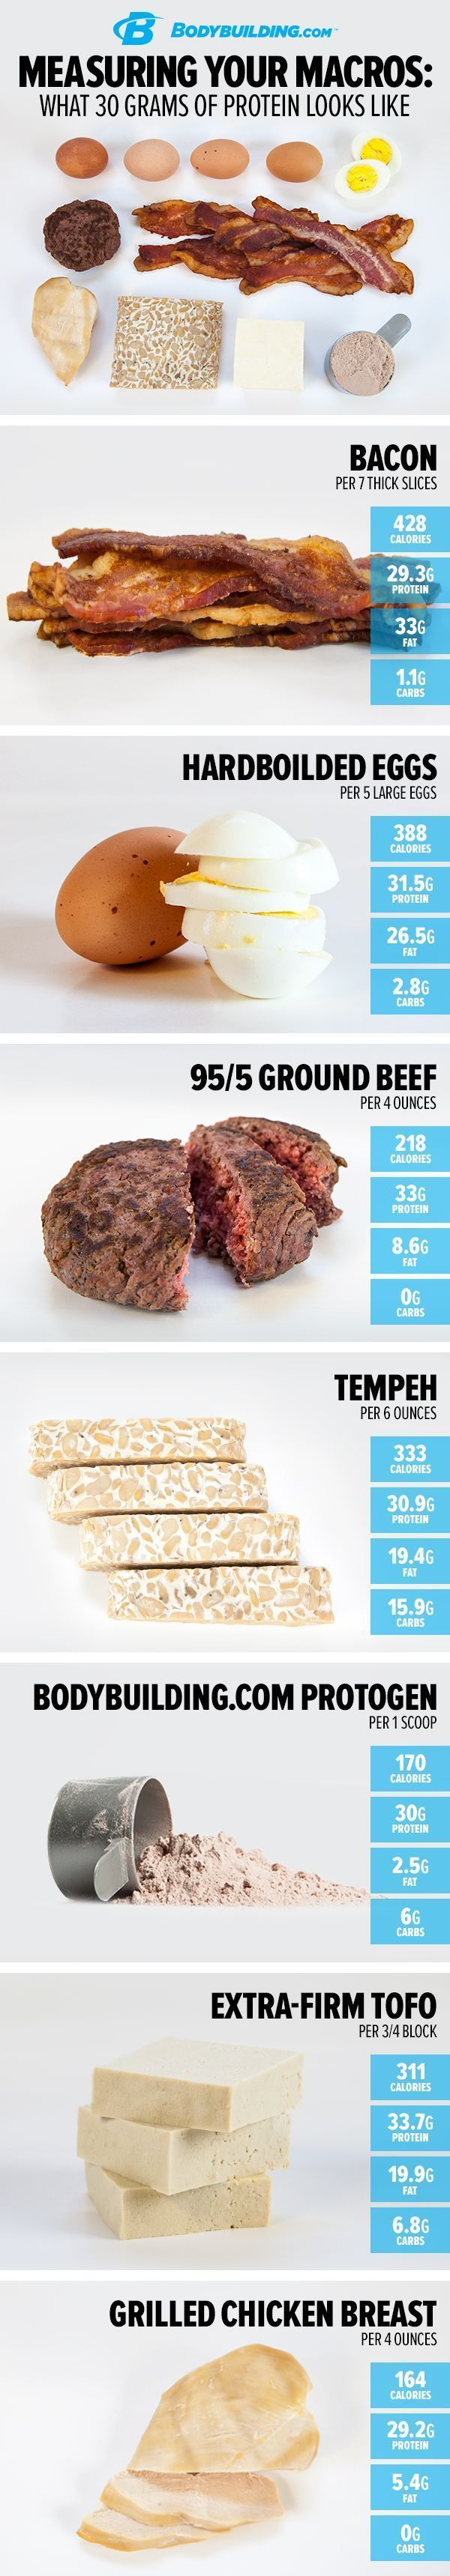 Use this one simple trick to build muscle quick See more here ► www.youtube.com/... Tags: dramatic weight loss tips - Measuring Your Macros: What 30 Grams of Protein Looks Like! Want to build muscle and lose fat? Then you need protein! Here's how much you need and how to measure it for each meal. http://Bodybuilding.com